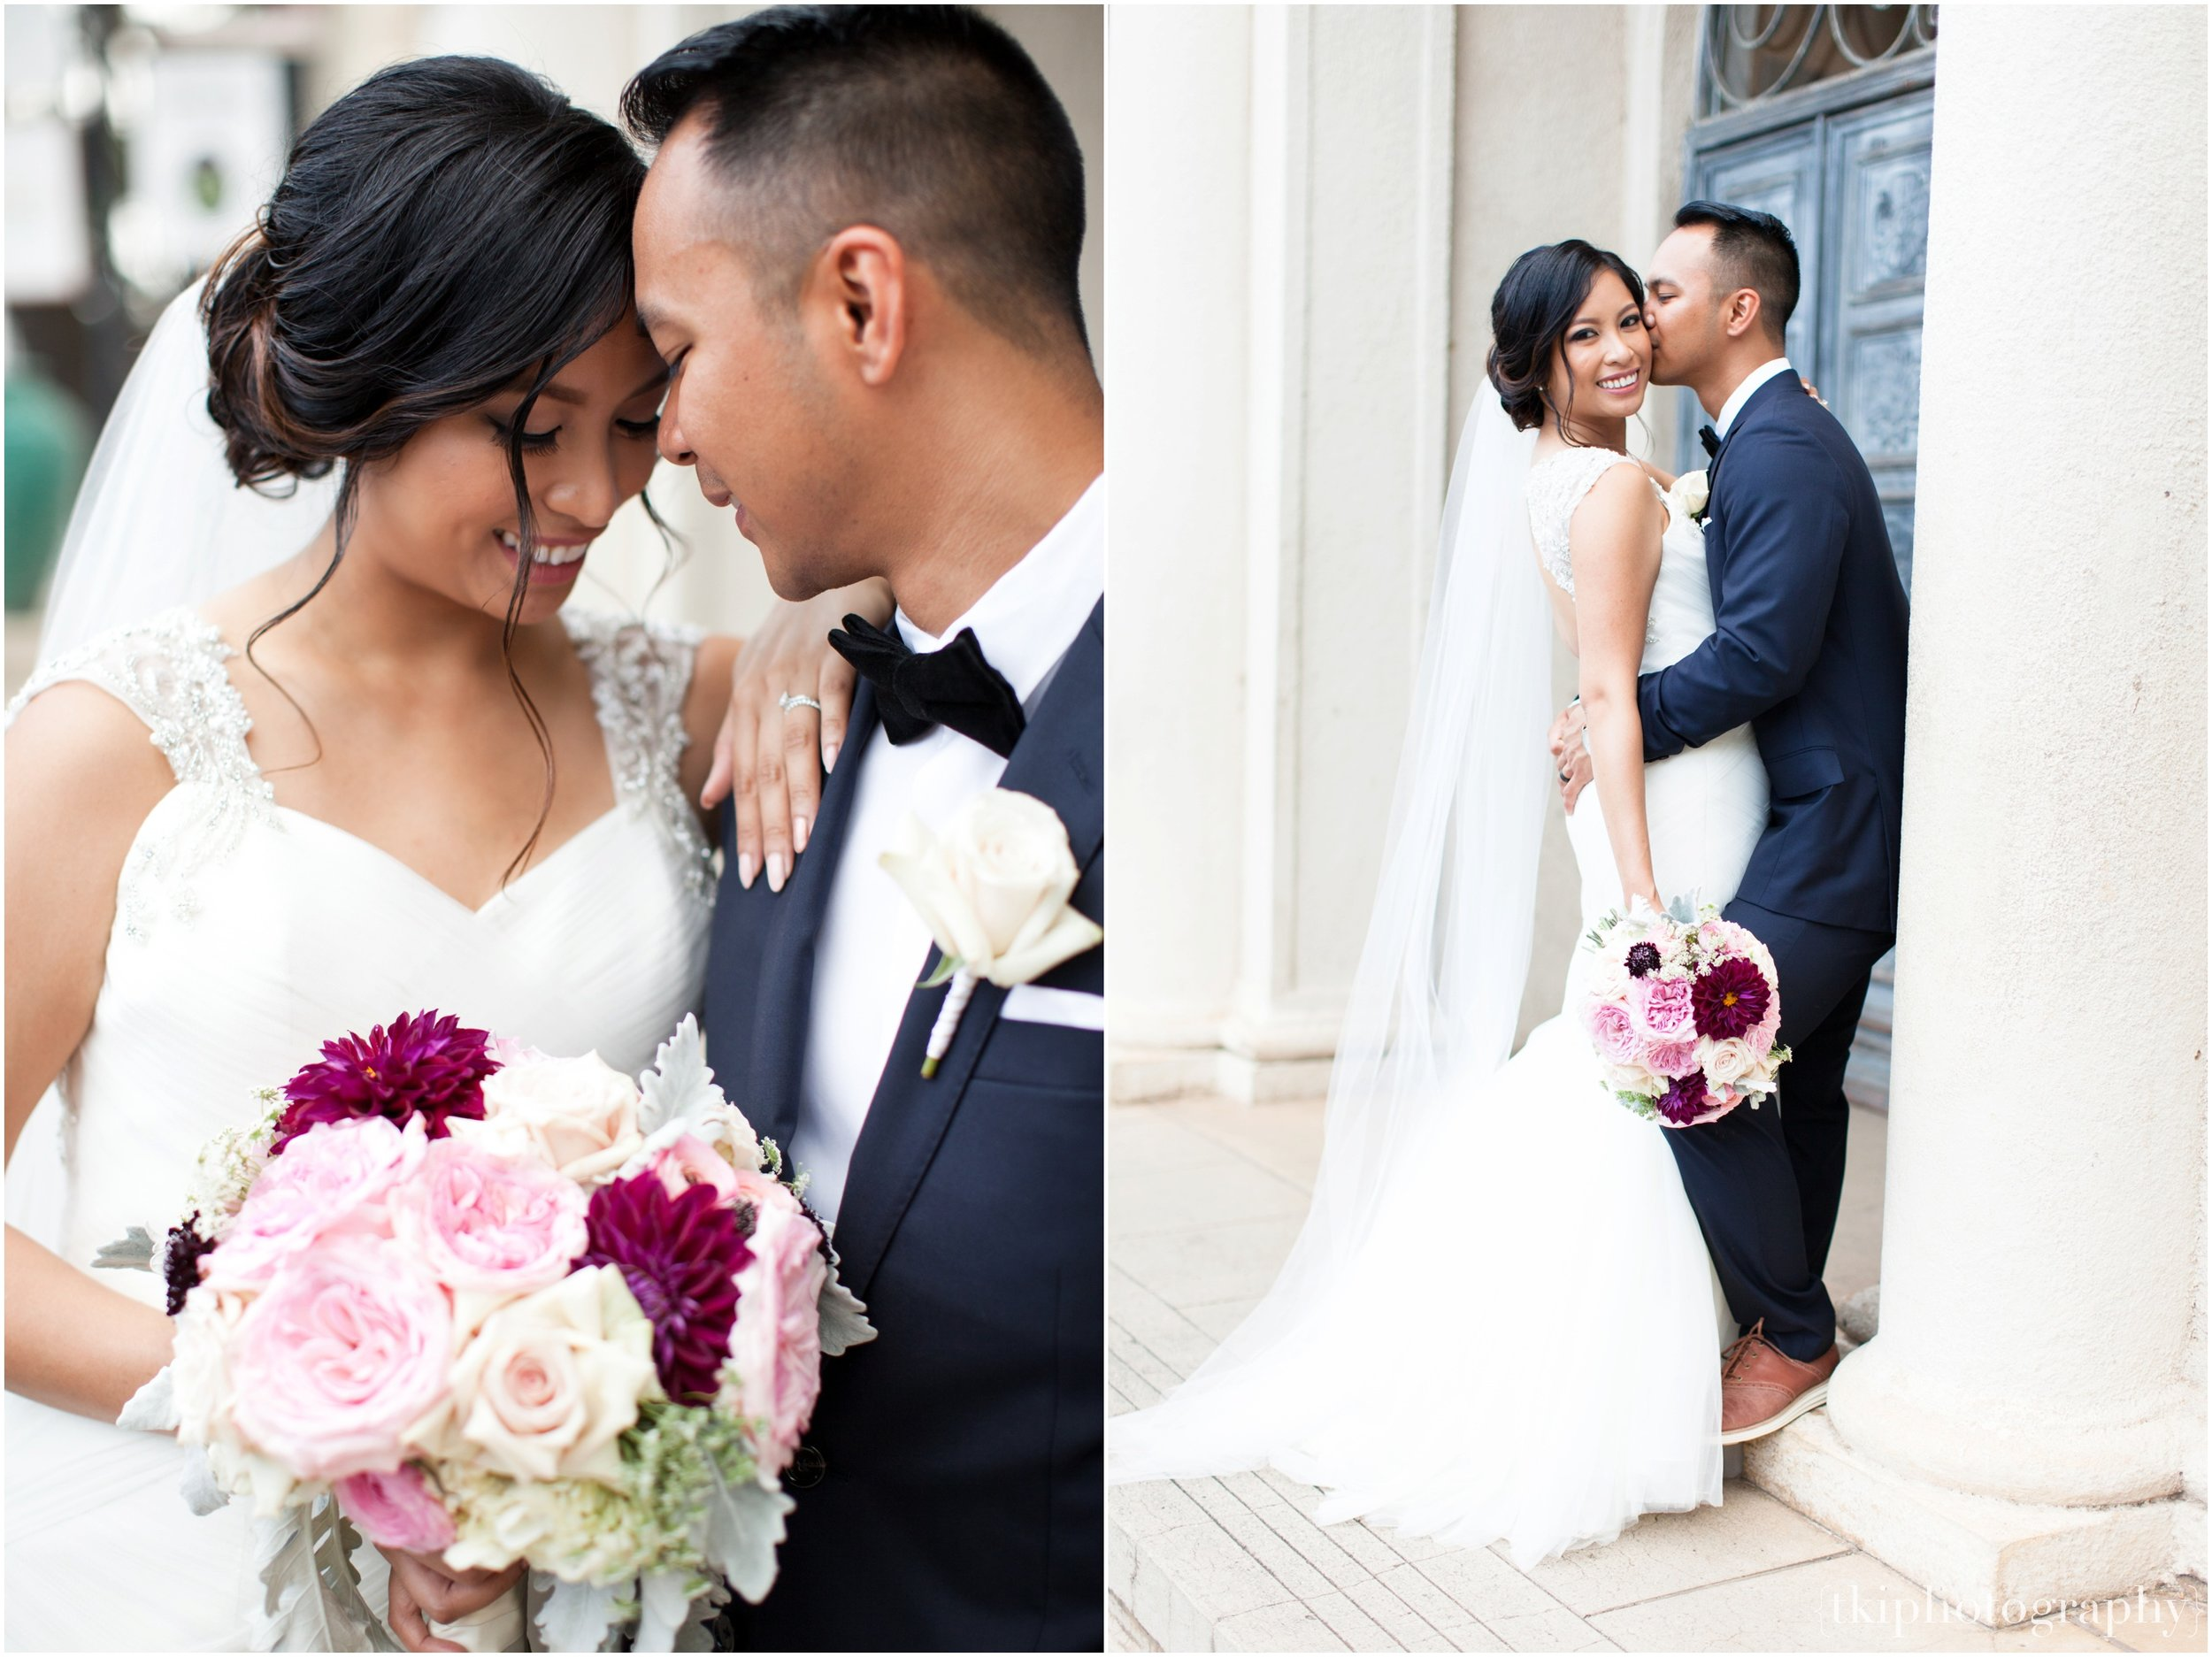 These images are timeless. Not just to remember an amazing day, but to make it last forever.